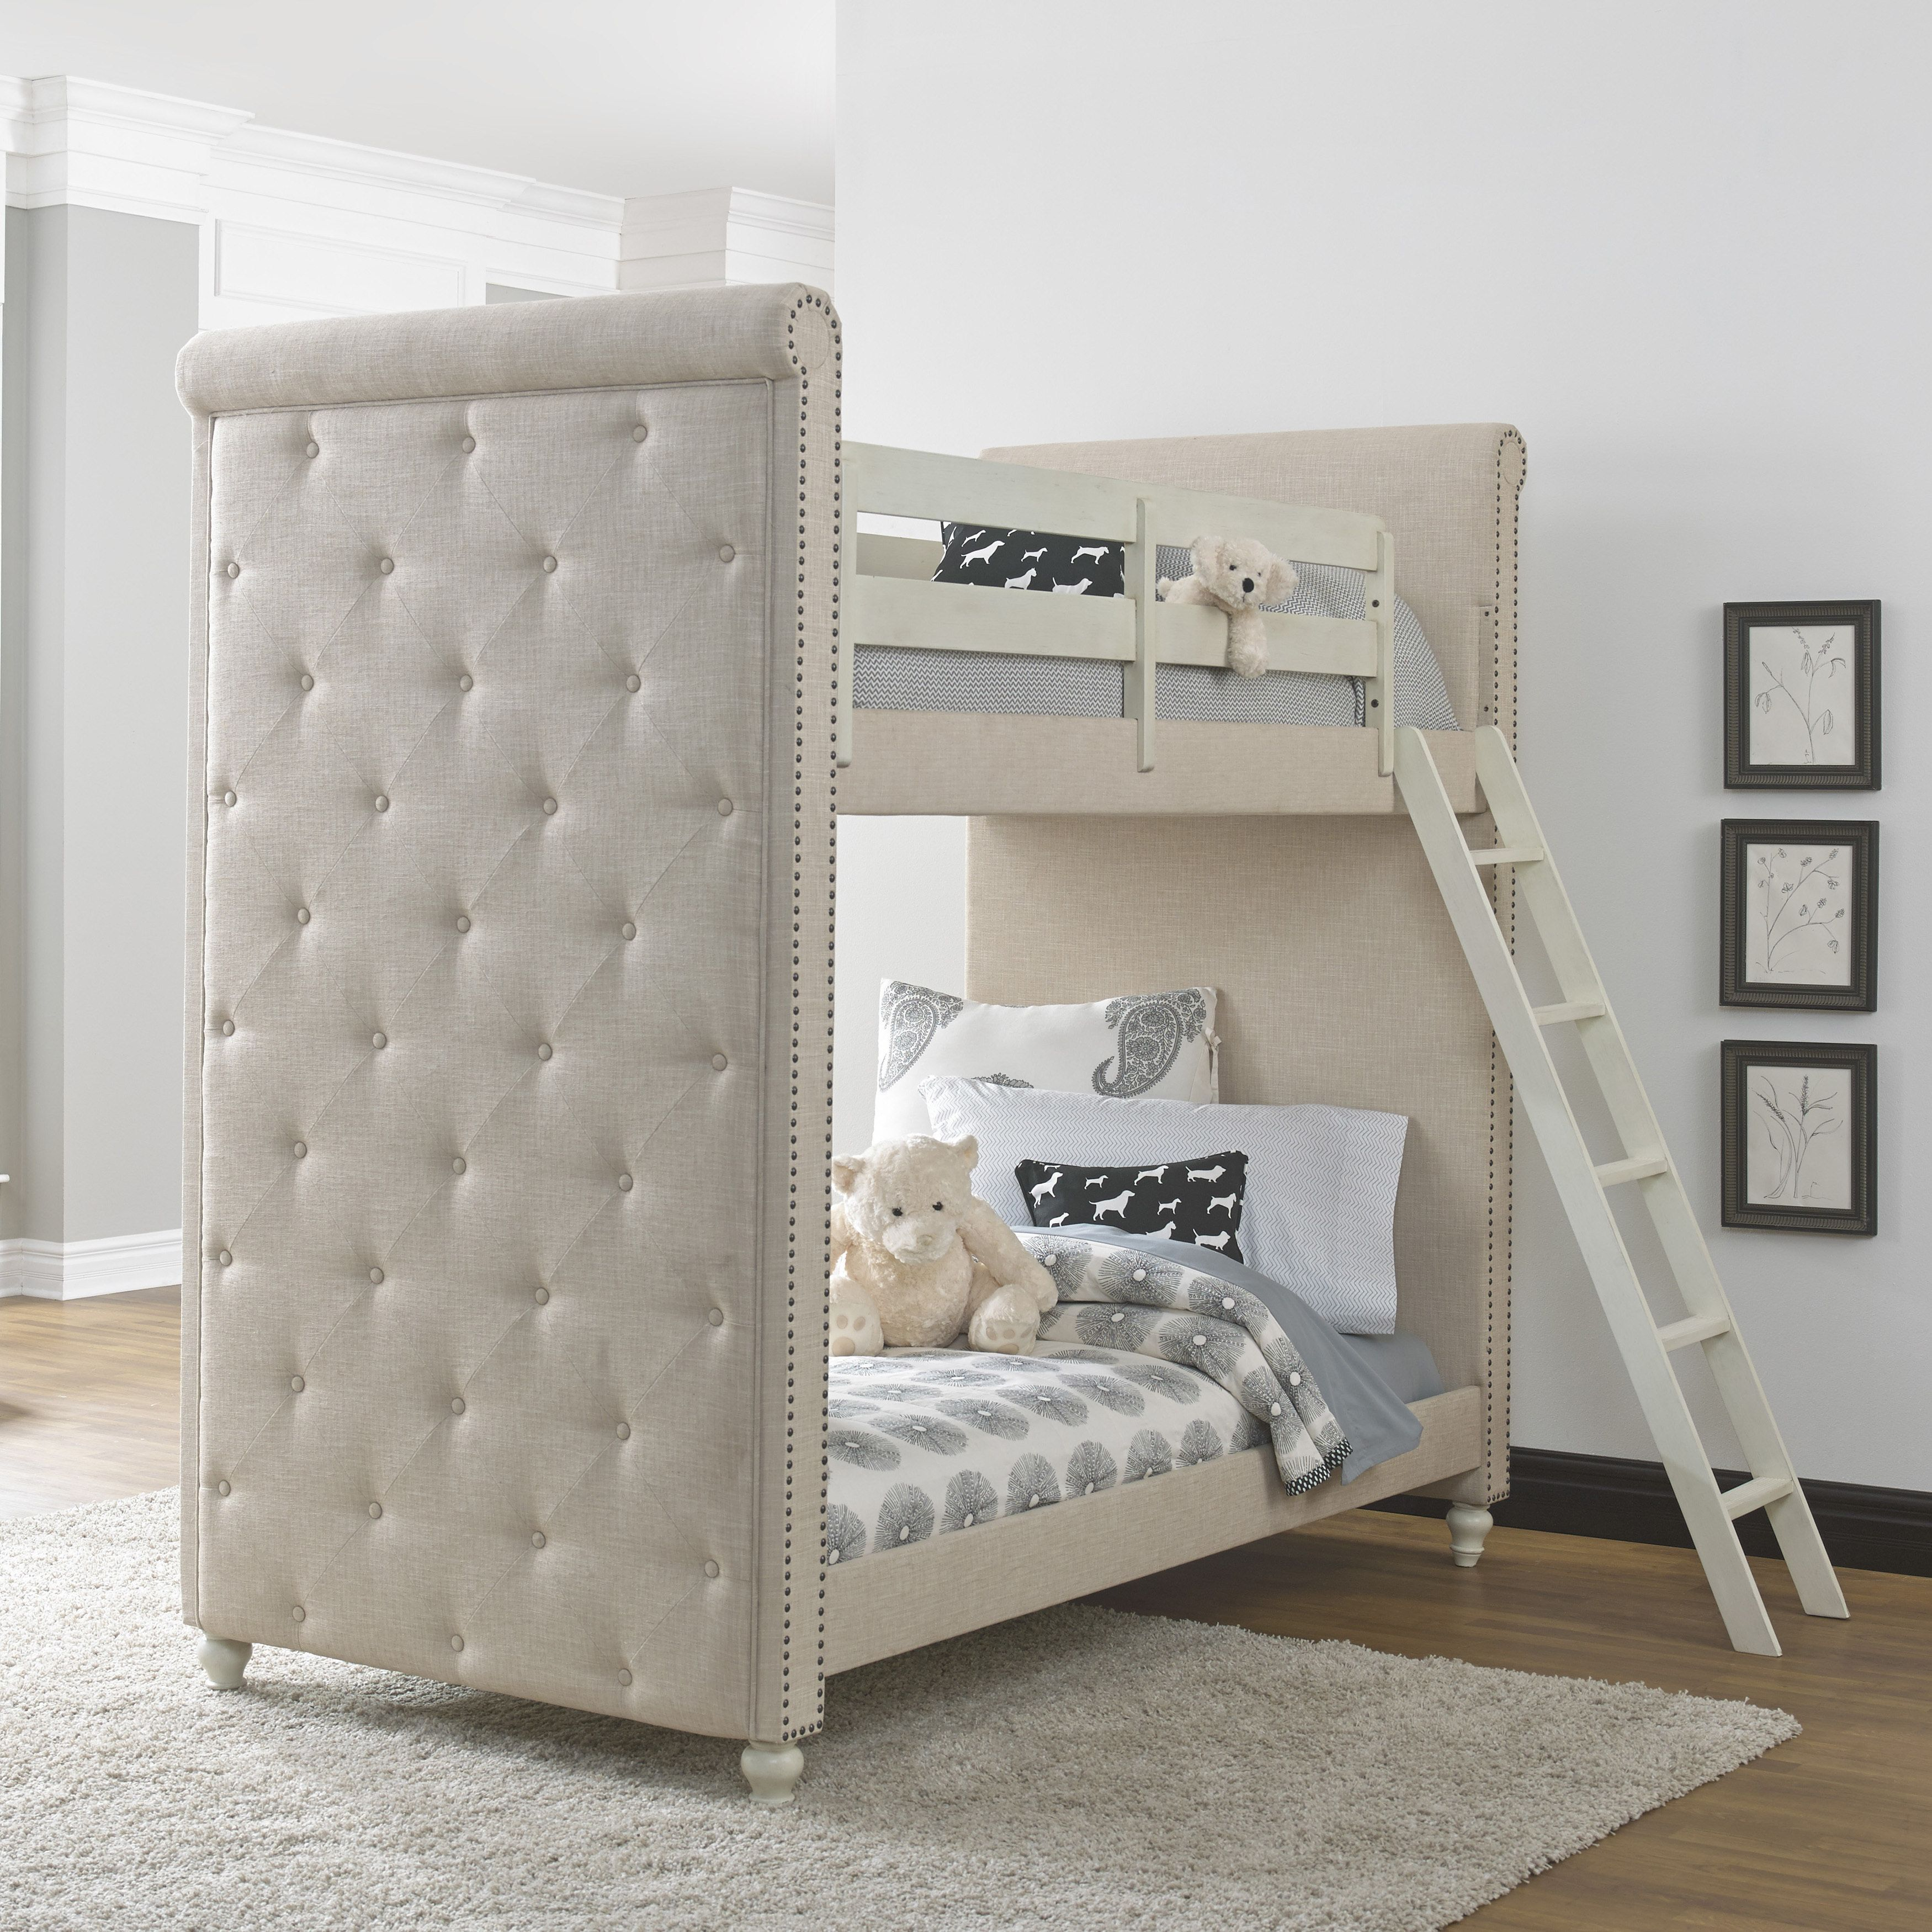 Pulaski Madison Youth White Upholstered Wood Twin Bunk Bed With